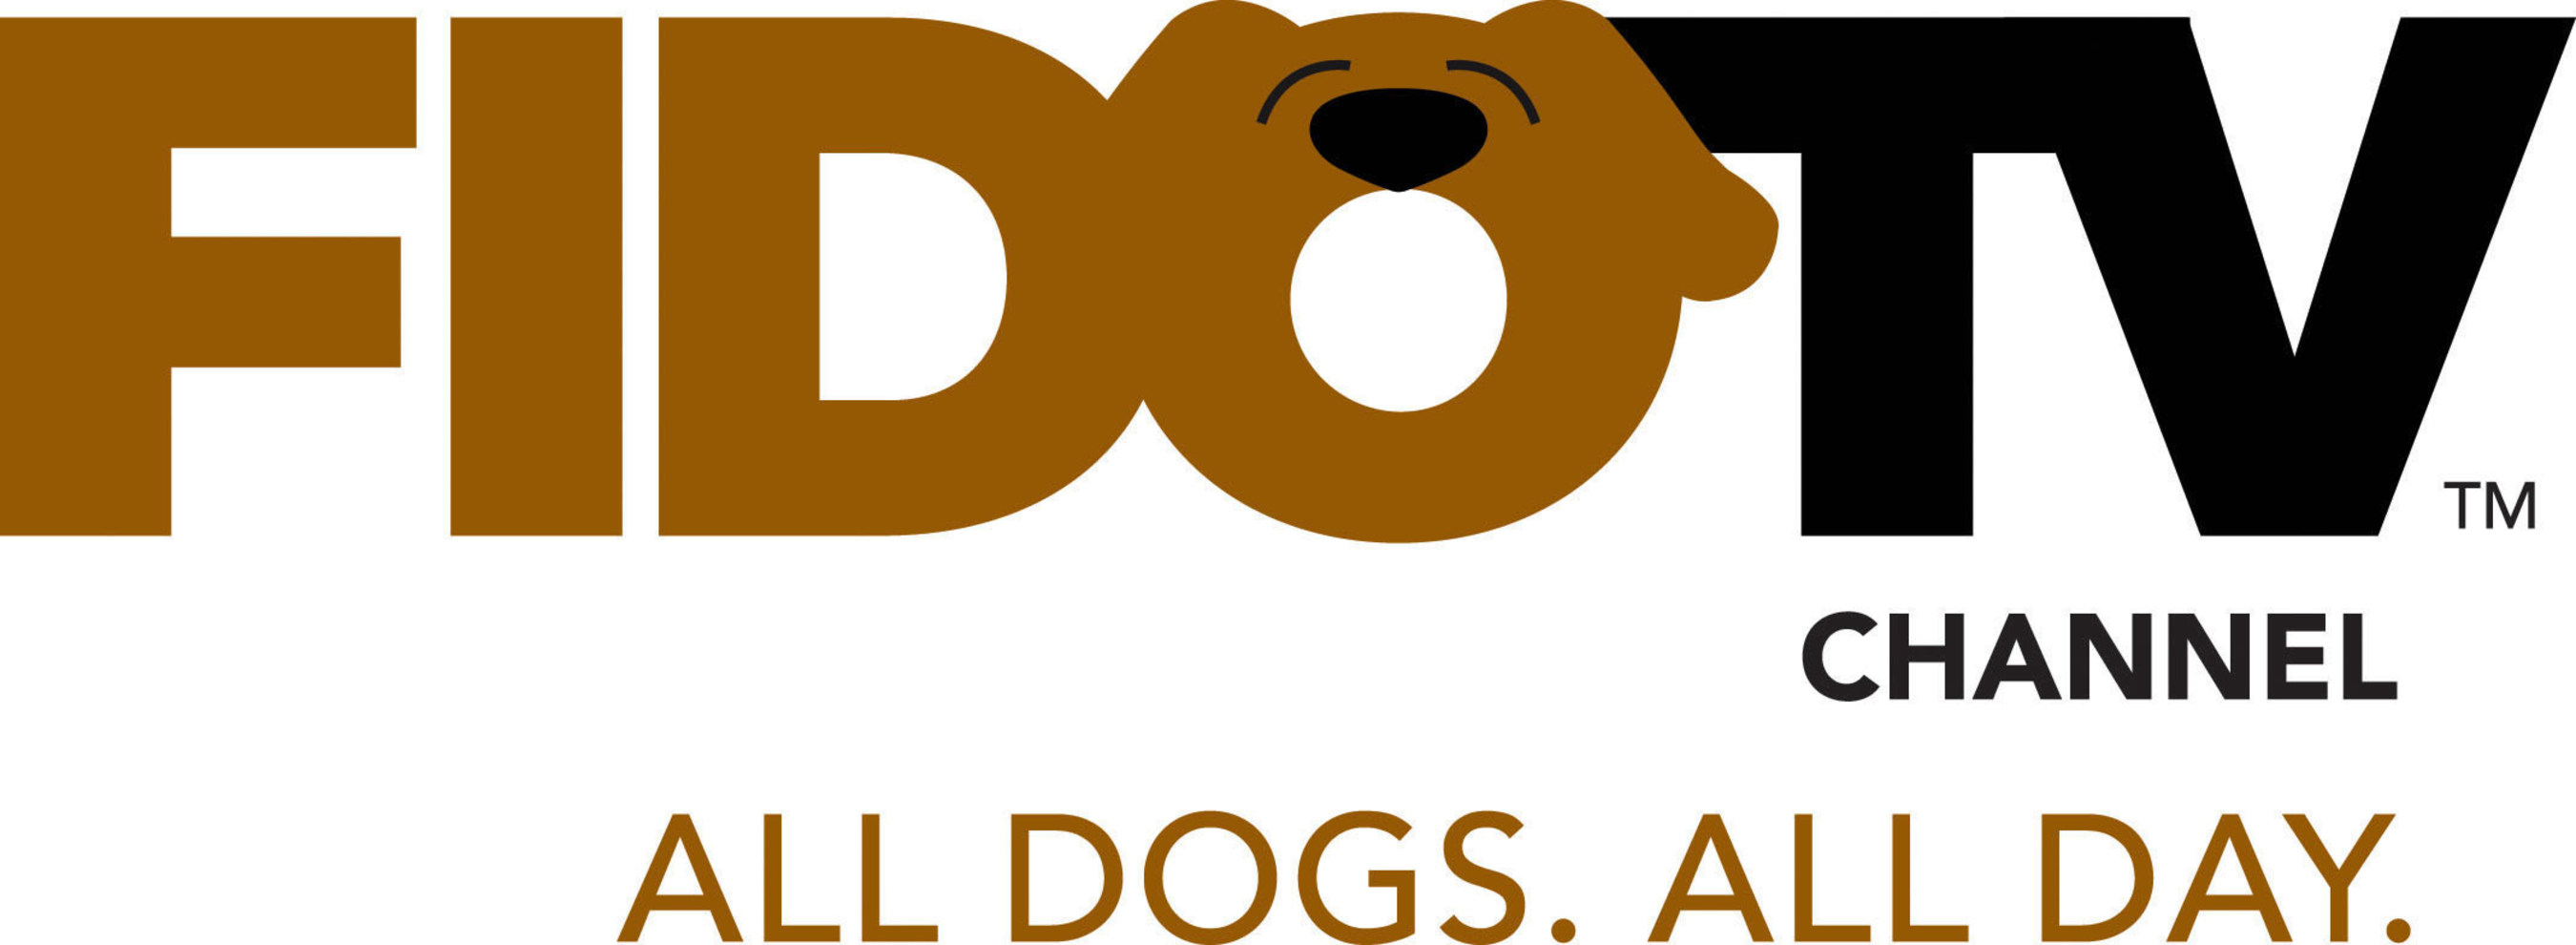 """FidoTV, the first television programming channel dedicated solely to dog lovers, launches """"All Dogs. All ..."""